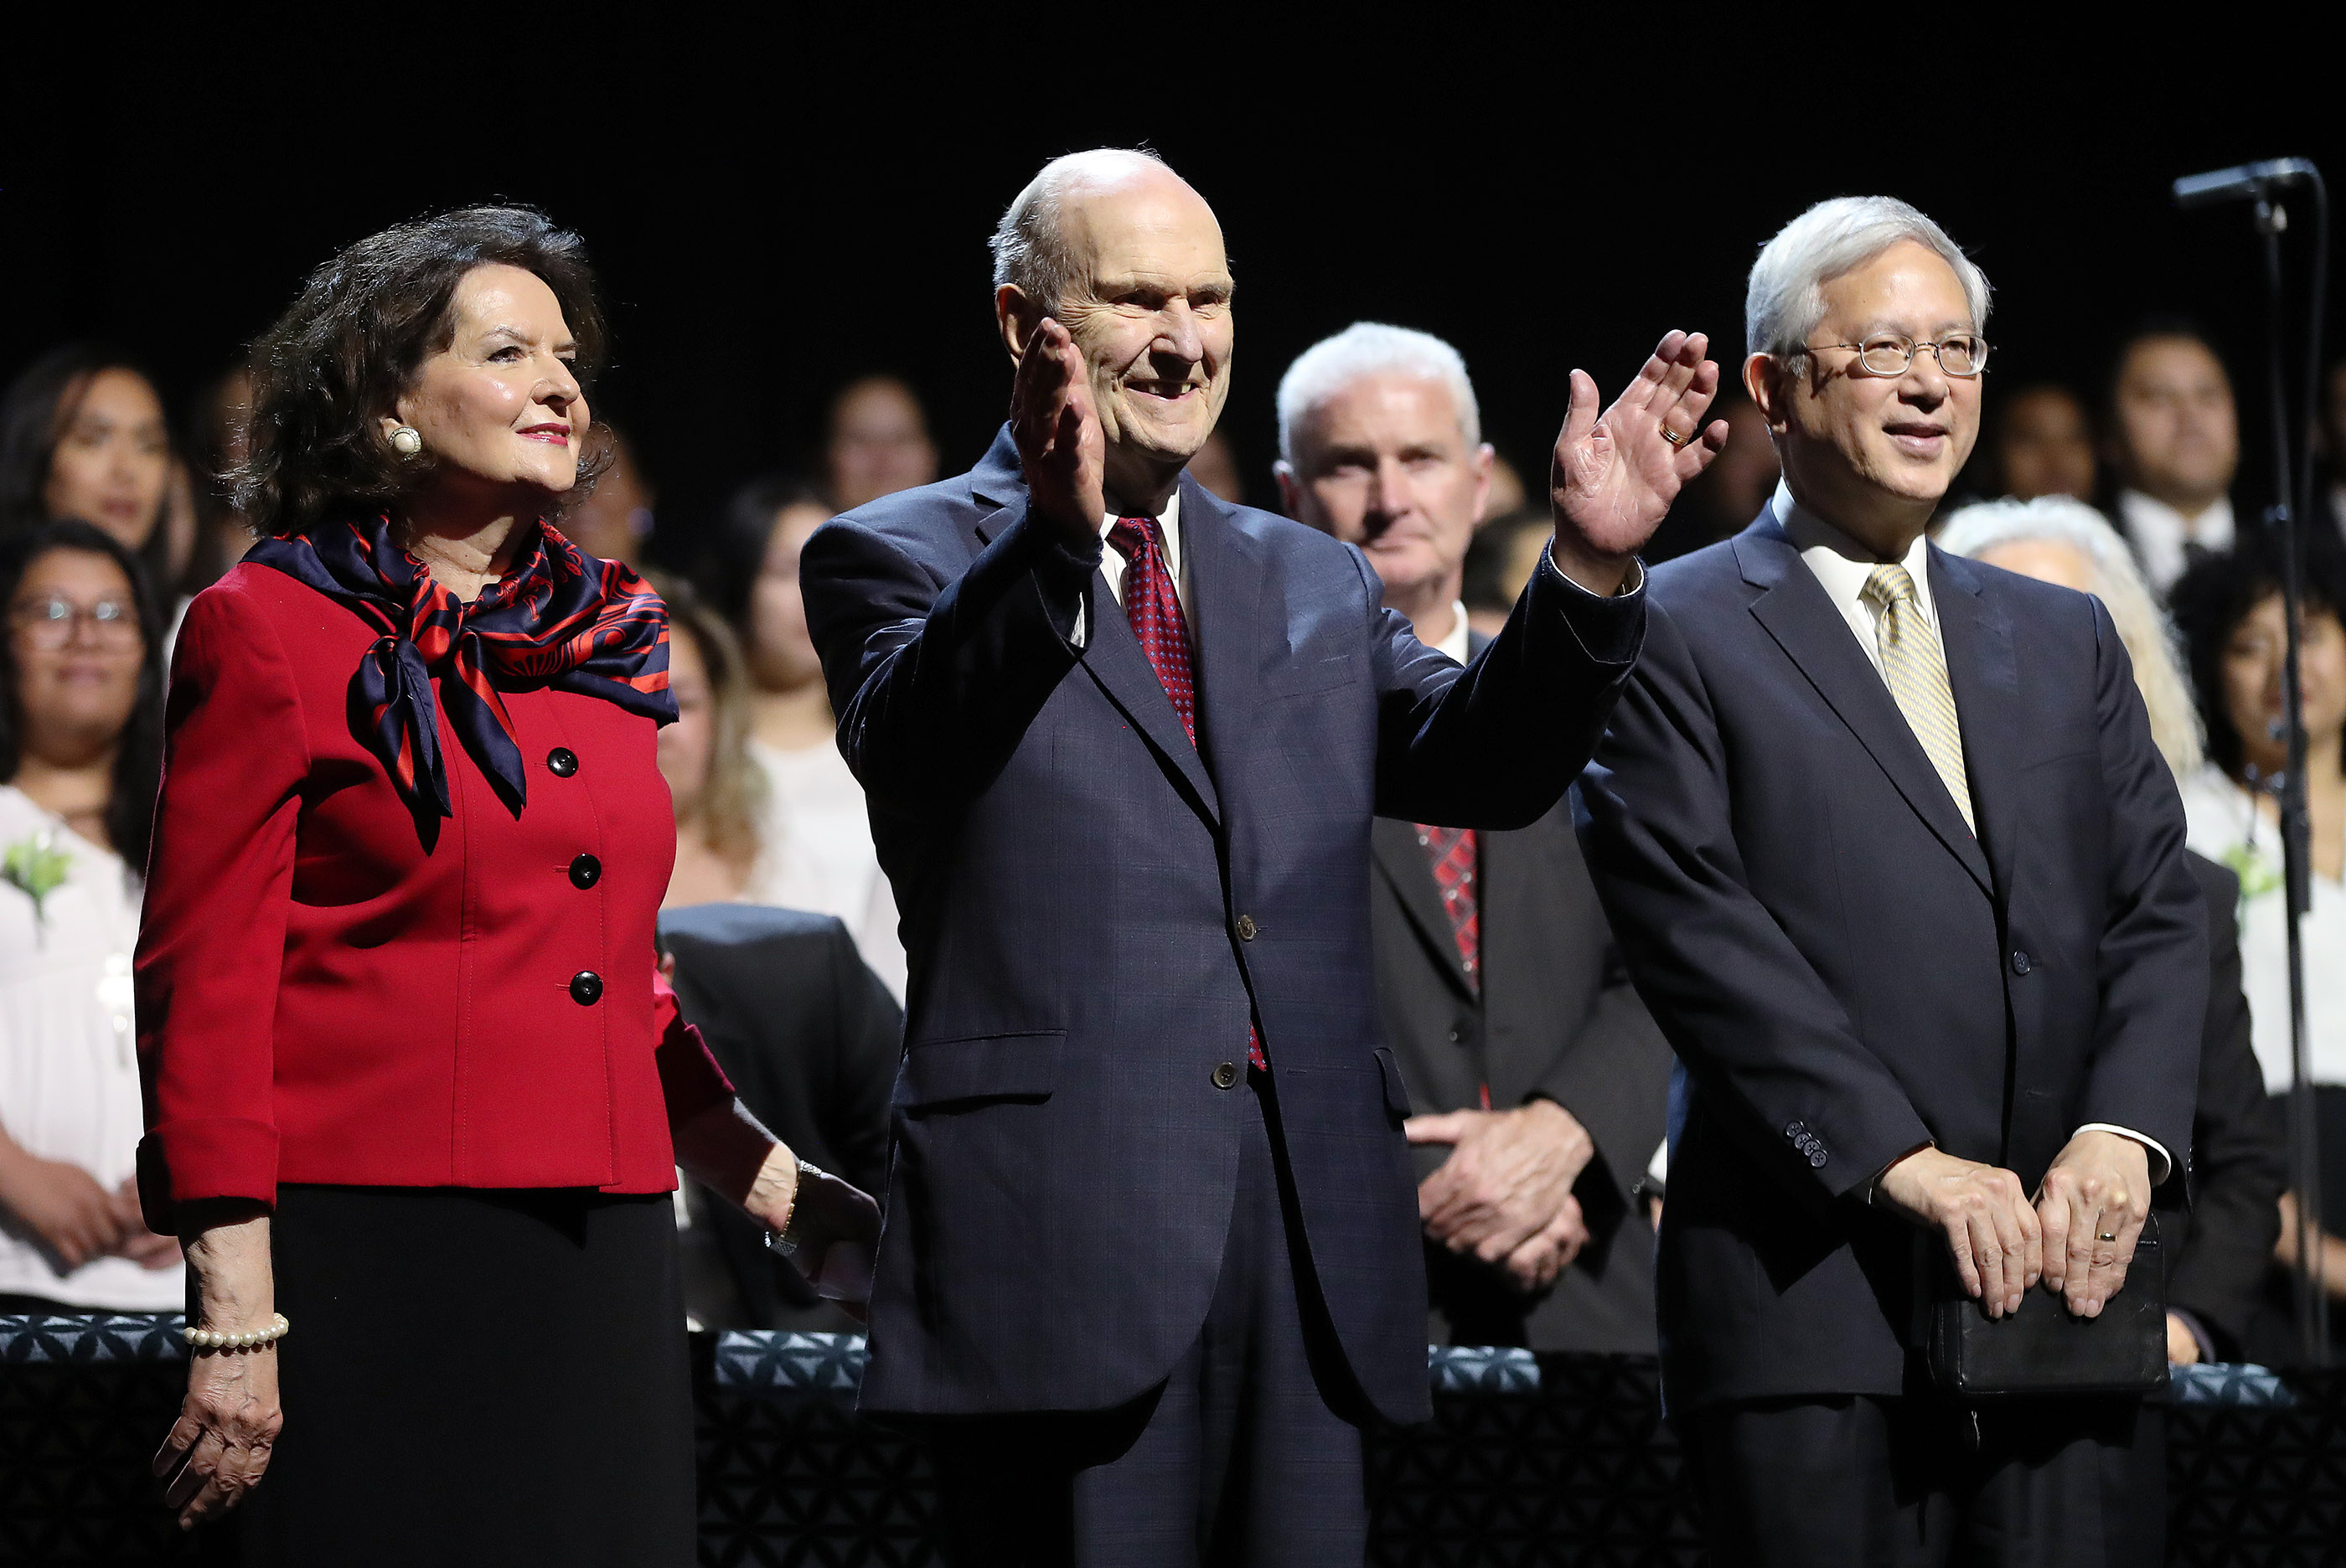 President Russell M. Nelson of The Church of Jesus Christ of Latter-day Saints and his wife, Sister Wendy Nelson, and Elder Gerrit W. Gong of The Church of Jesus Christ of Latter-day Saints' Quorum of the Twelve Apostles acknowledge attendees prior to a devotional in Spark Arena in Auckland, New Zealand, on May 21, 2019.